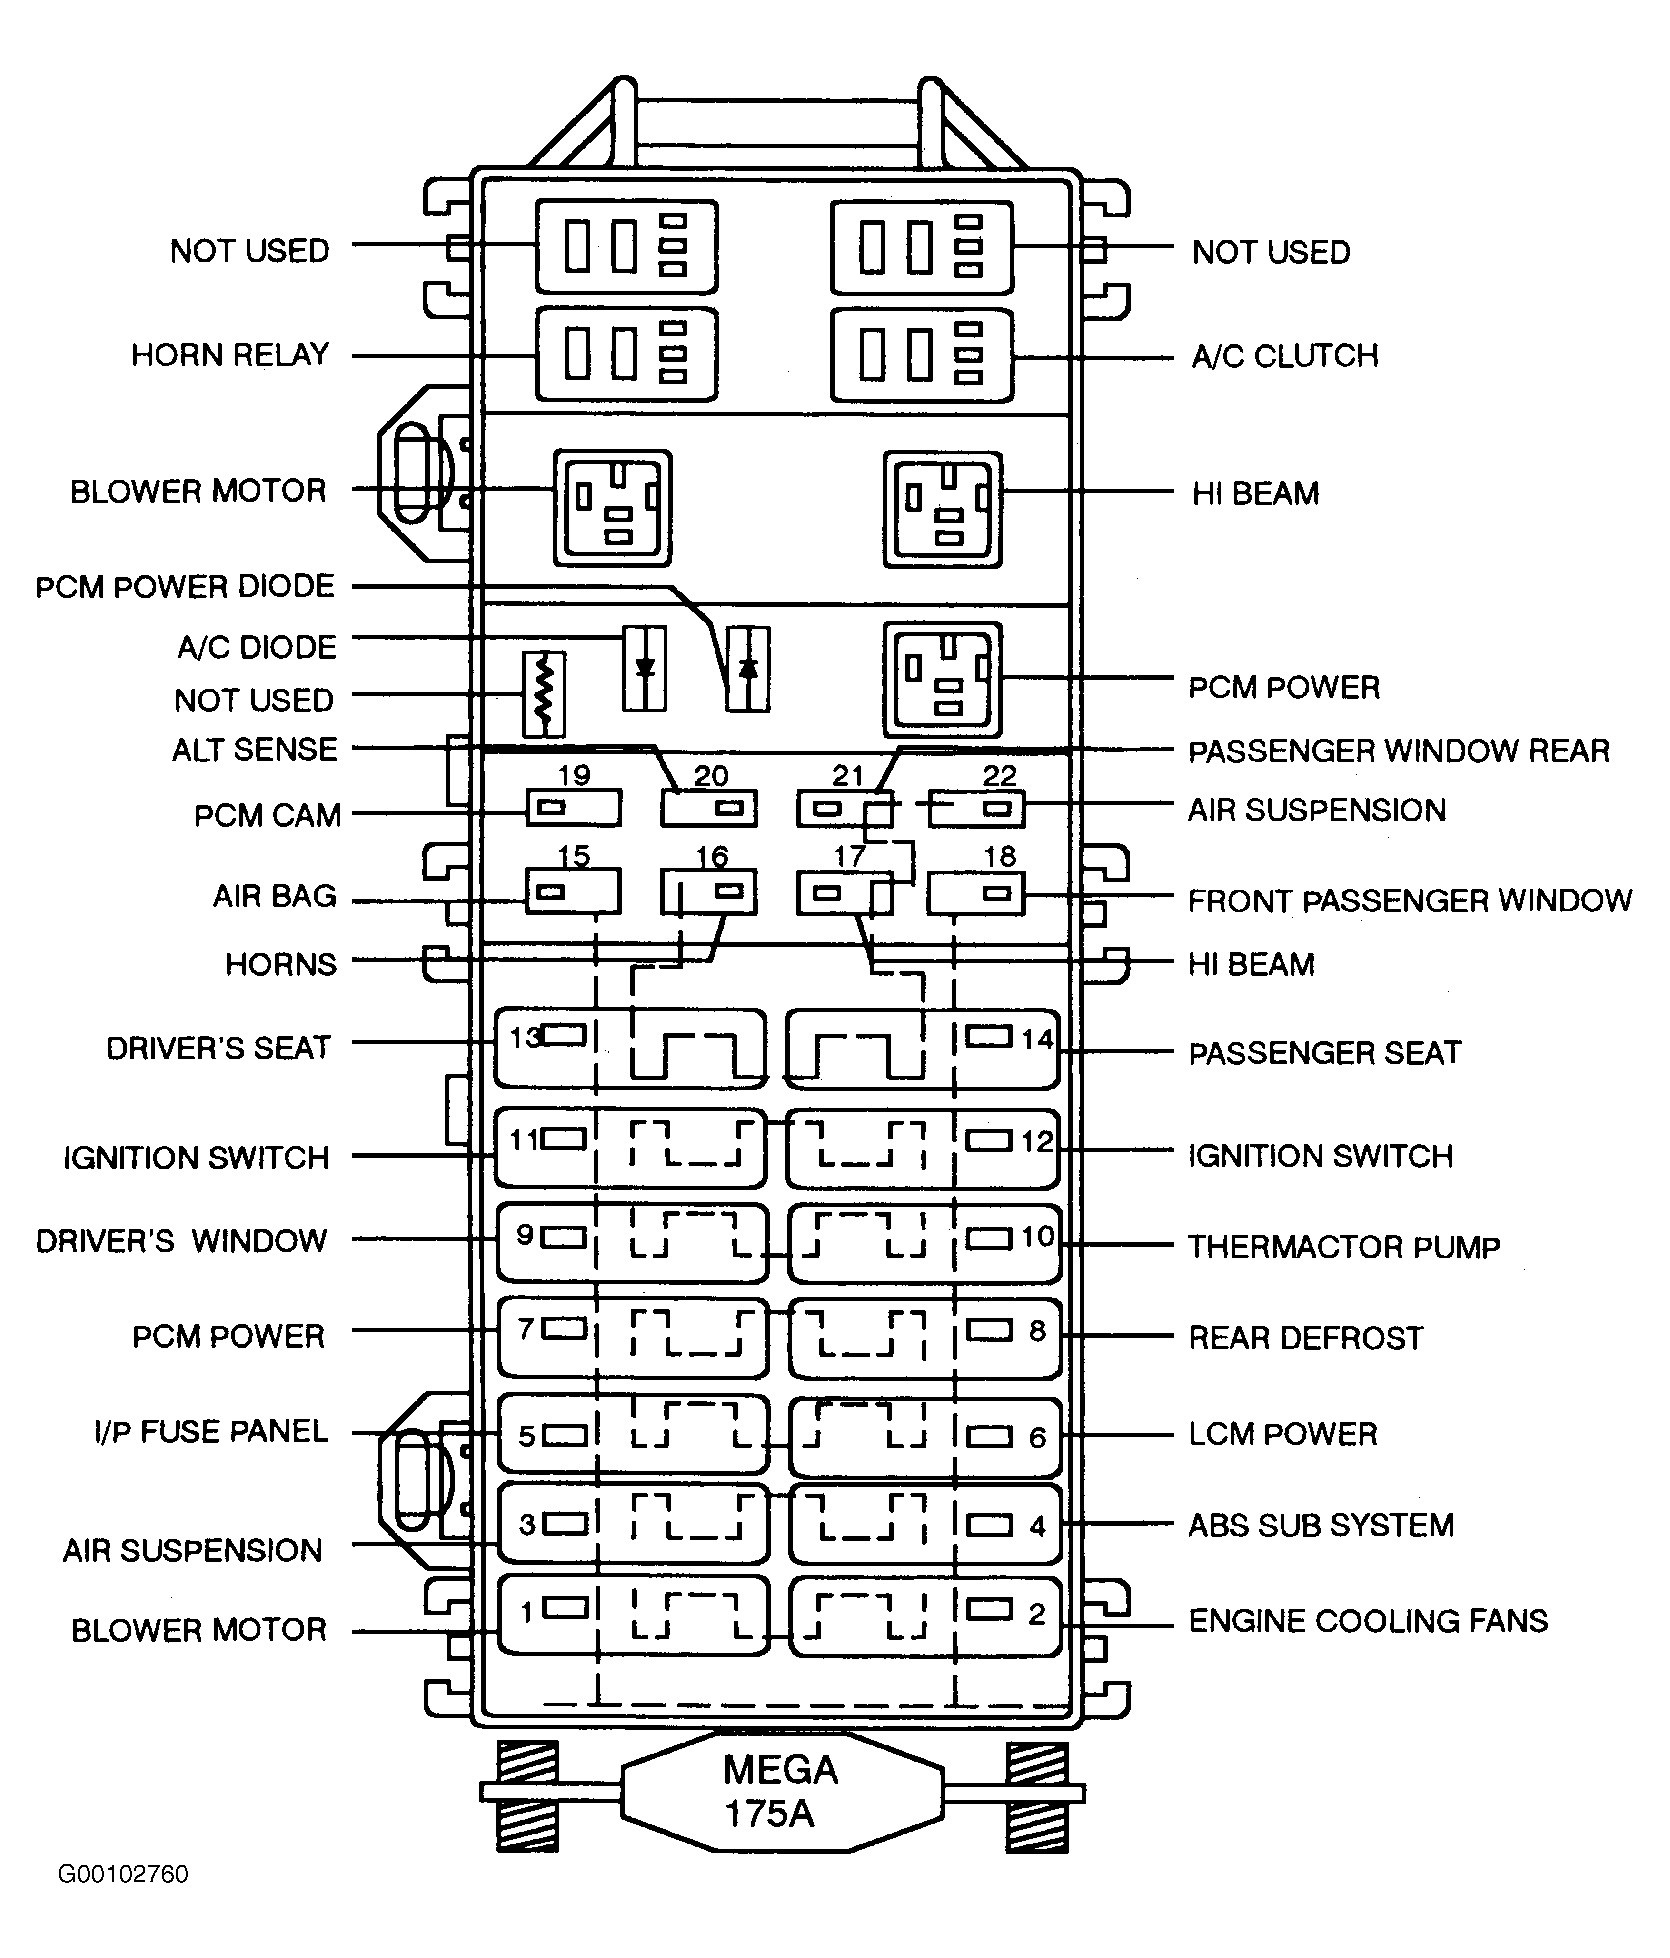 2001 chevy tracker dash fuse box diagram